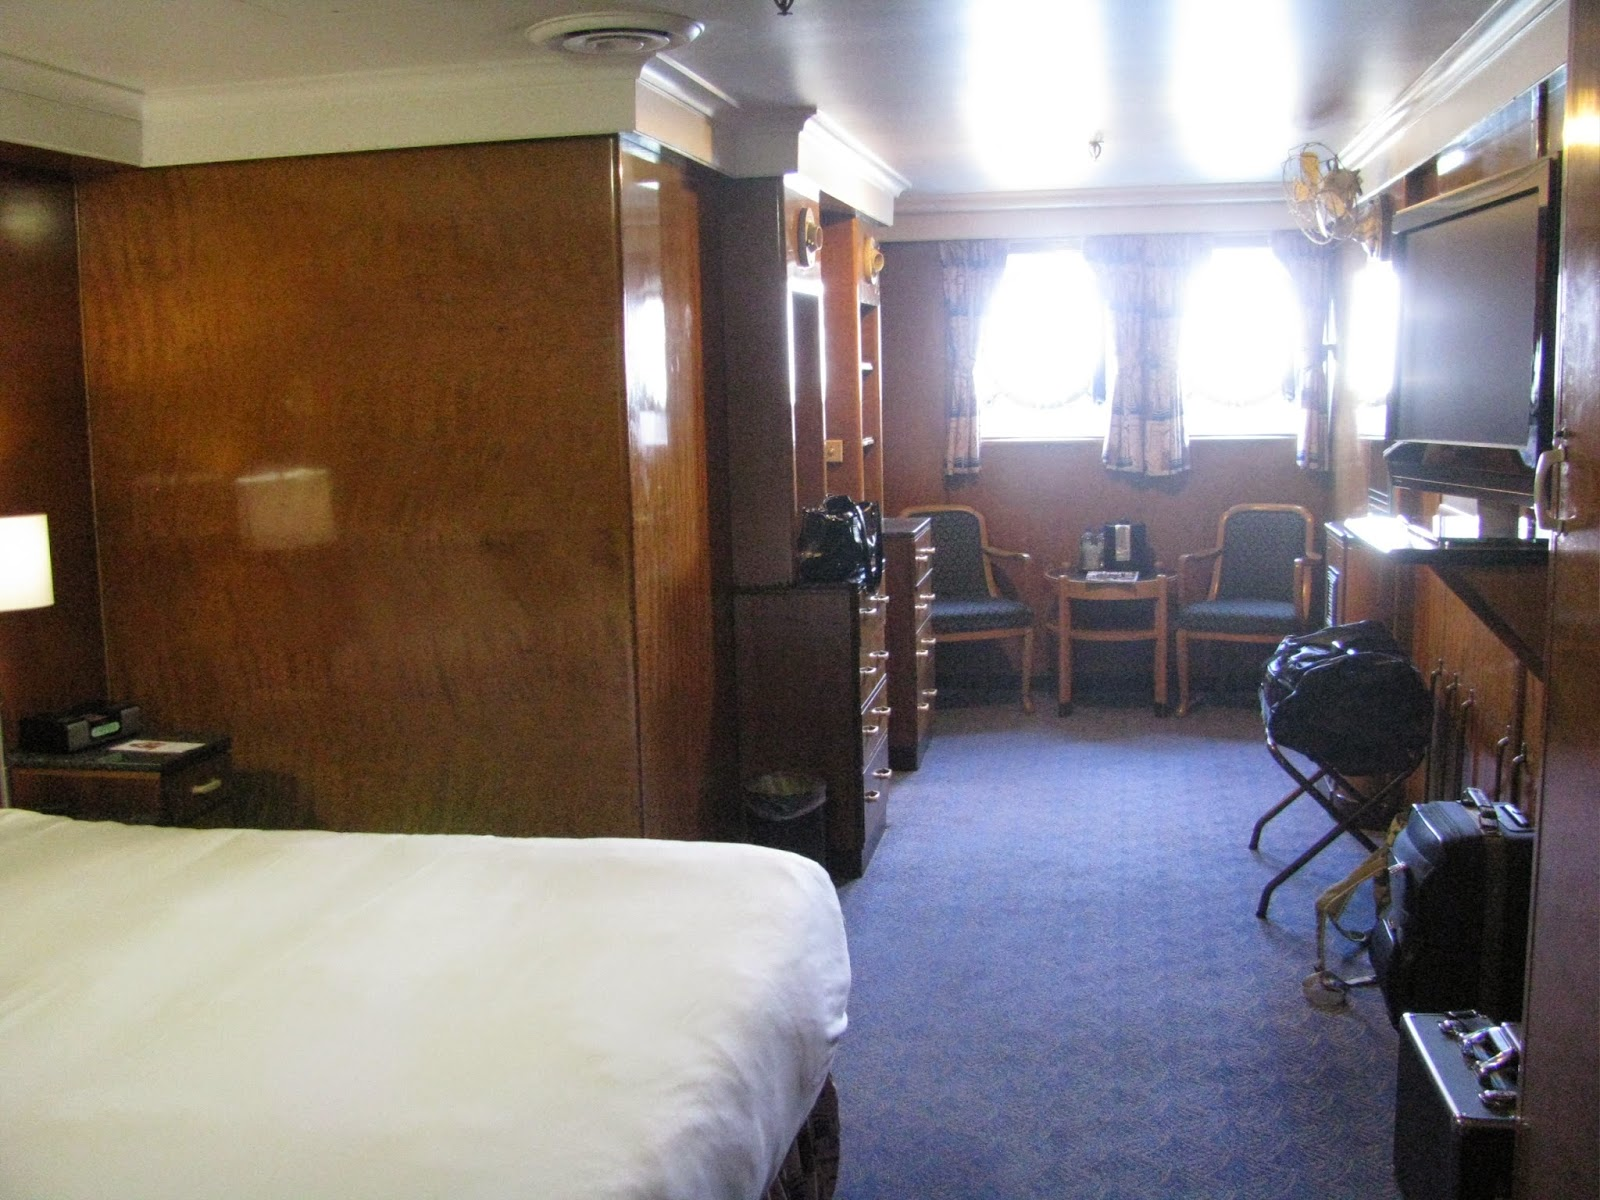 Onedaemon July 2014 Visit To The Queen Mary Hotel Room B433